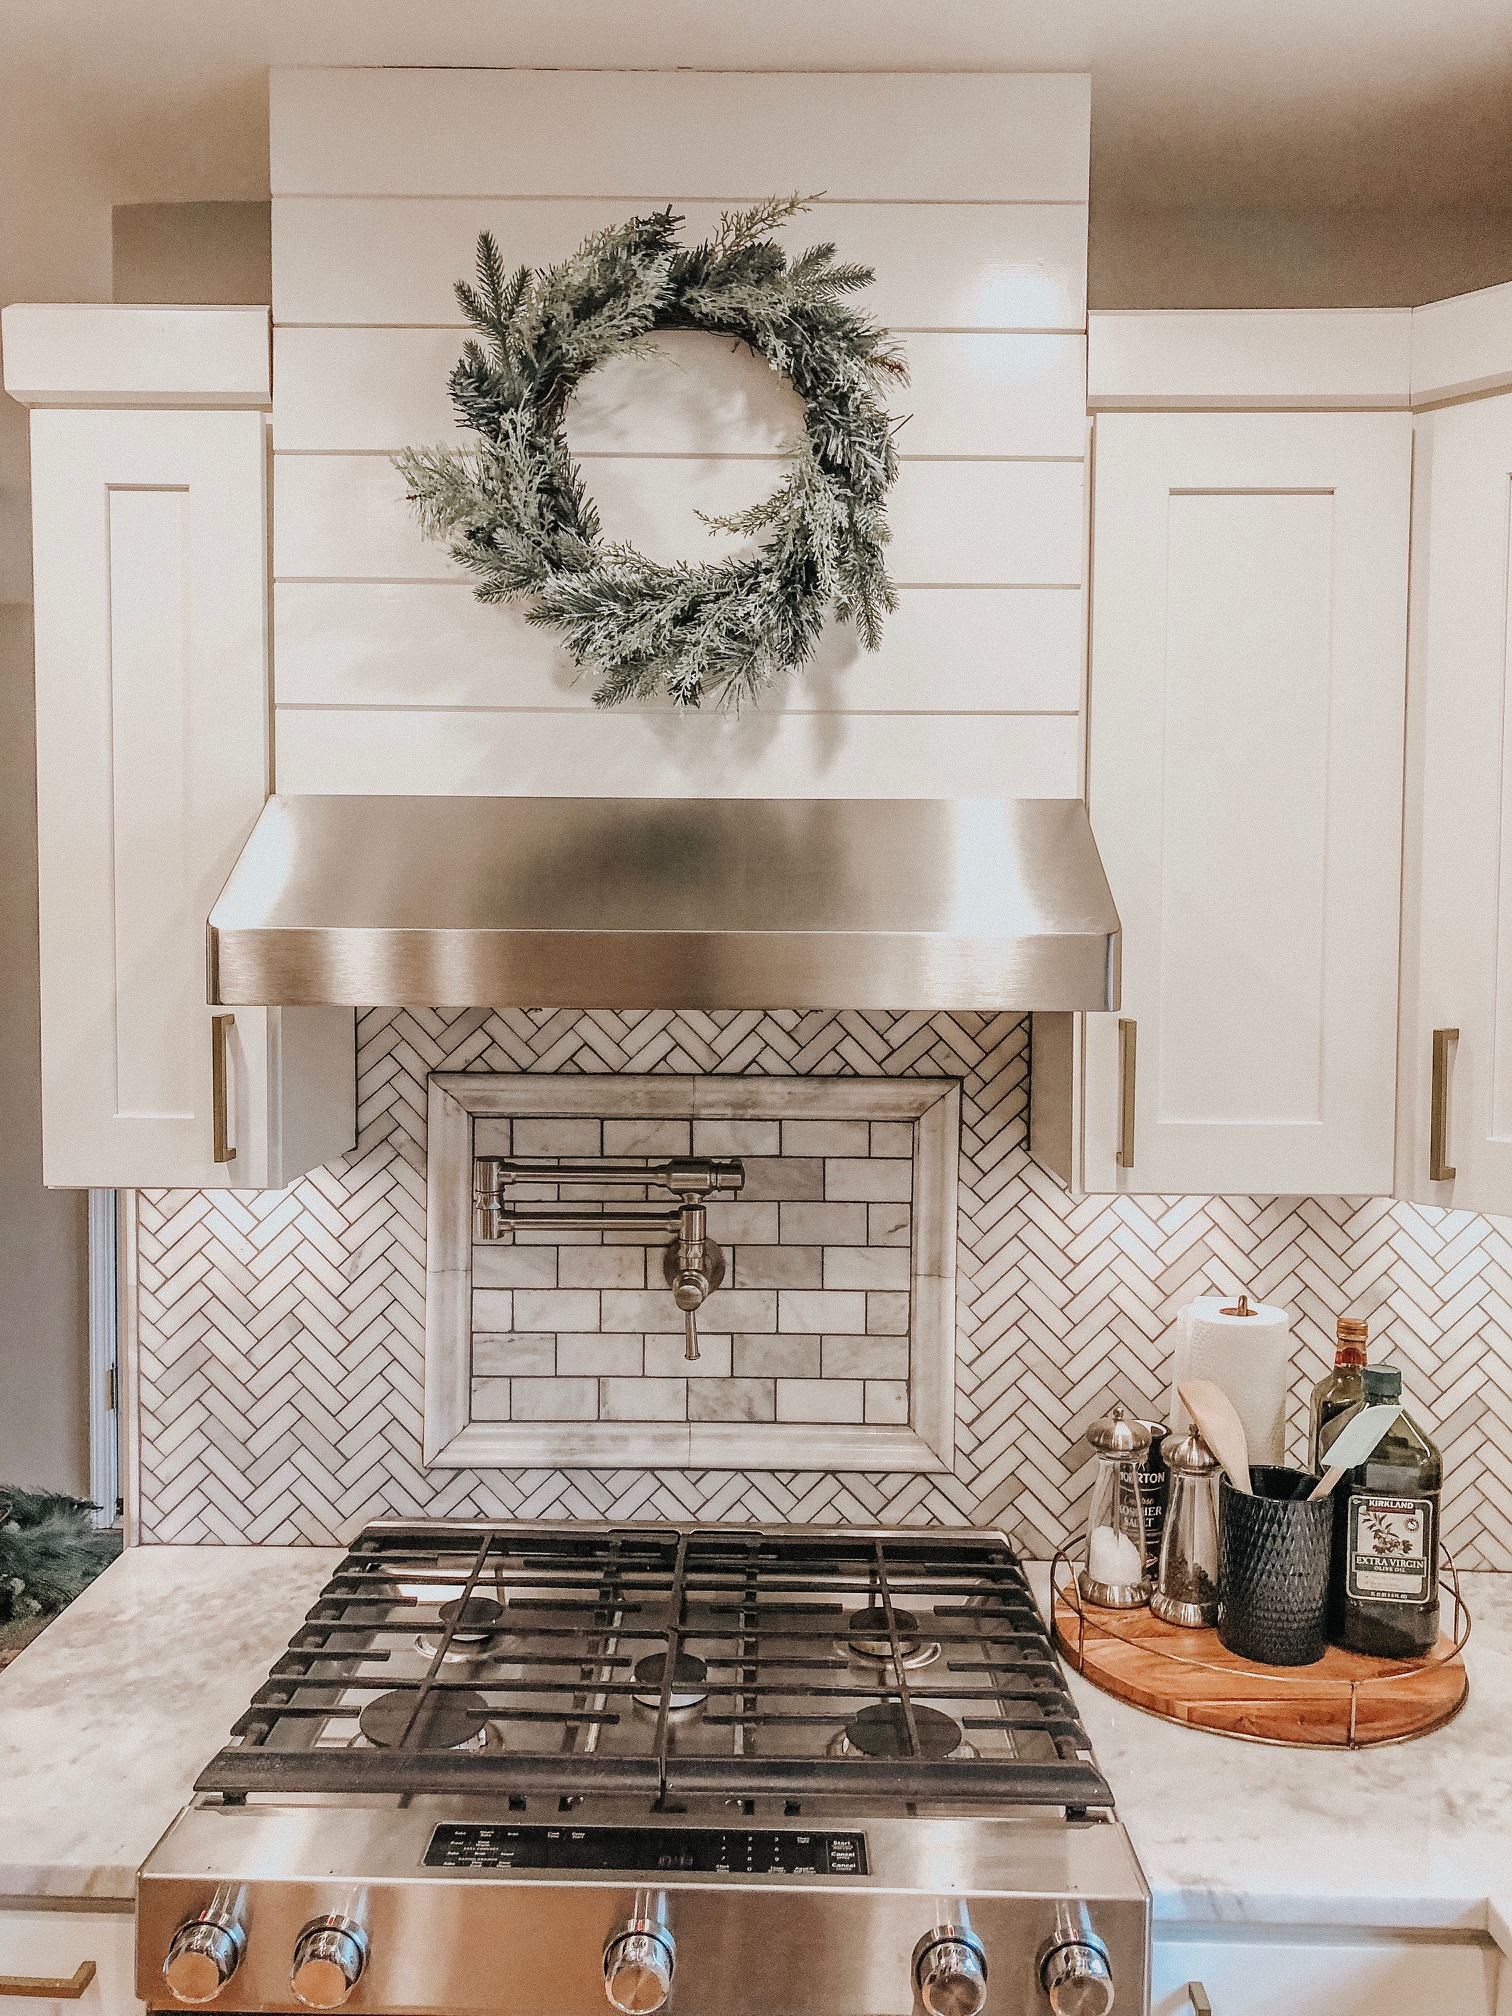 Holiday Decor Tips and Ideas | Daily Splendor Life and Style Blog | Kitchen Decor, wreath, holidays, christmas #kitcheninspo #cozyhome #christmas #christmaswreath #christmasdecor